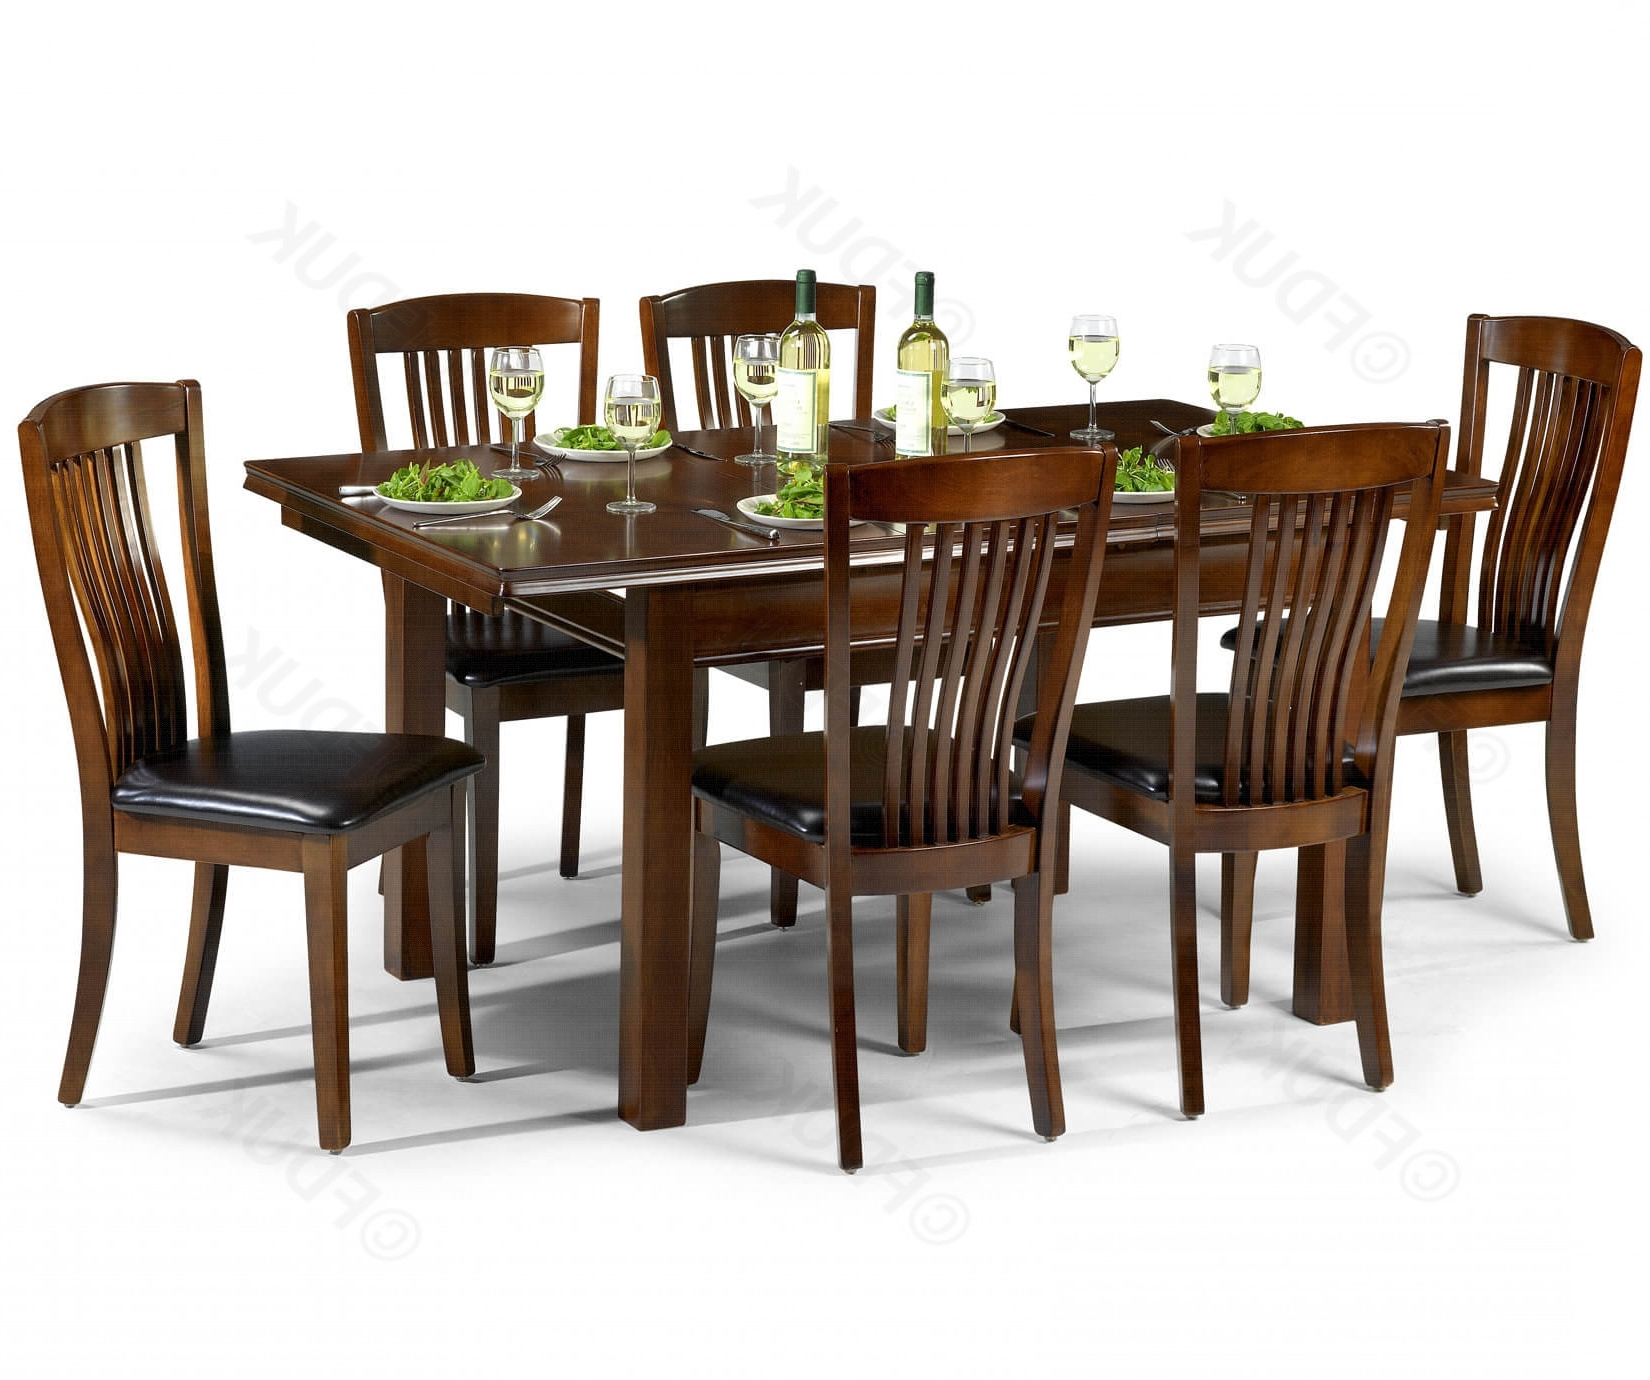 Canterbury Wooden Dining Table With 6 Within Famous Extending Dining Tables And 6 Chairs (View 19 of 25)